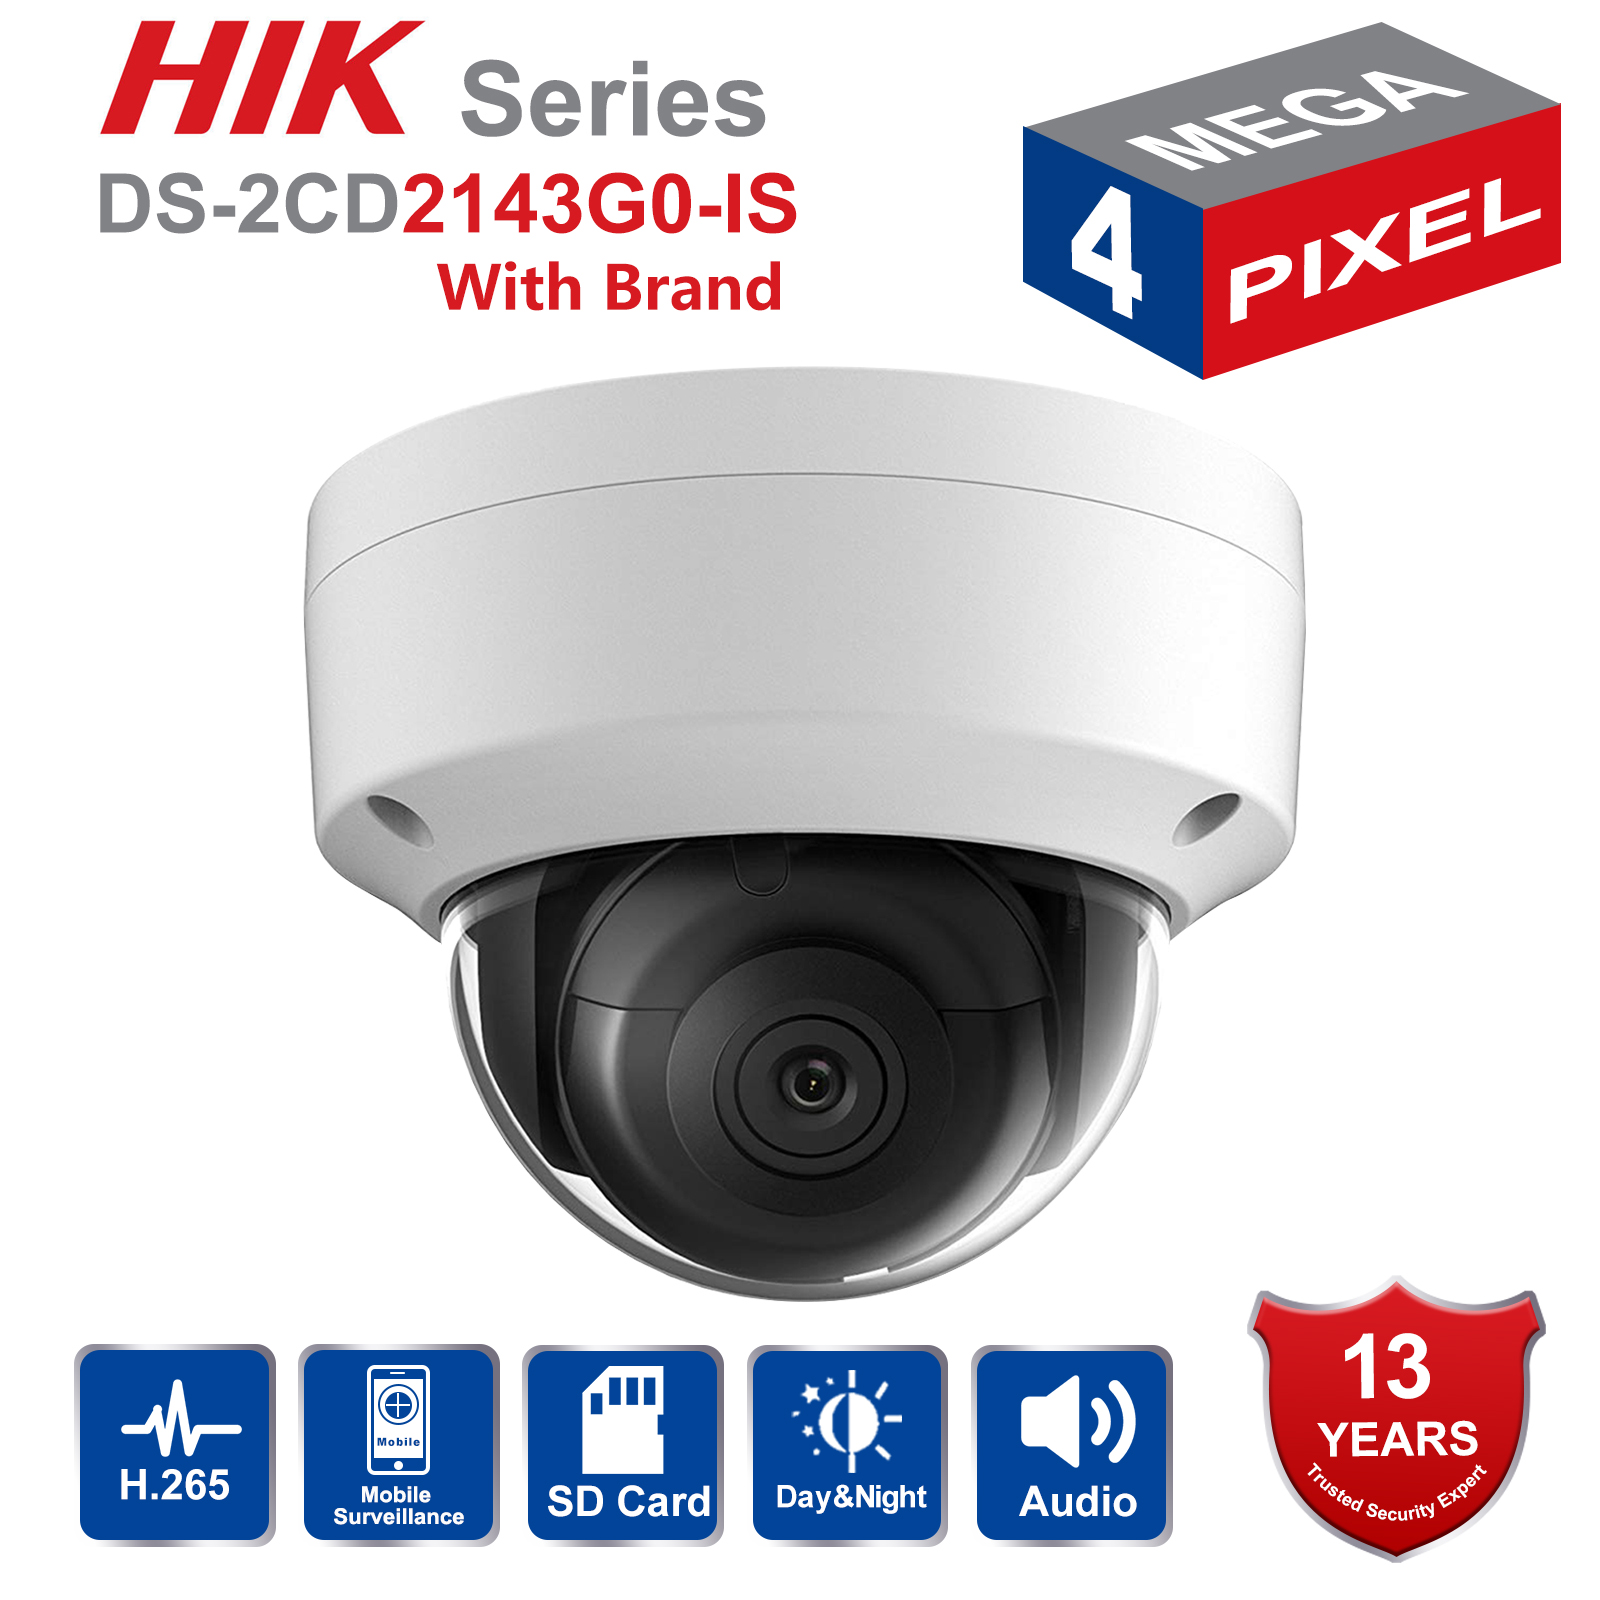 Hik Dome CCTV IP Camera Outdoor DS-2CD2143G0-IS 4MP IR Network Security Night Version Camera H.265 with SD Card Slot IP 67Hik Dome CCTV IP Camera Outdoor DS-2CD2143G0-IS 4MP IR Network Security Night Version Camera H.265 with SD Card Slot IP 67